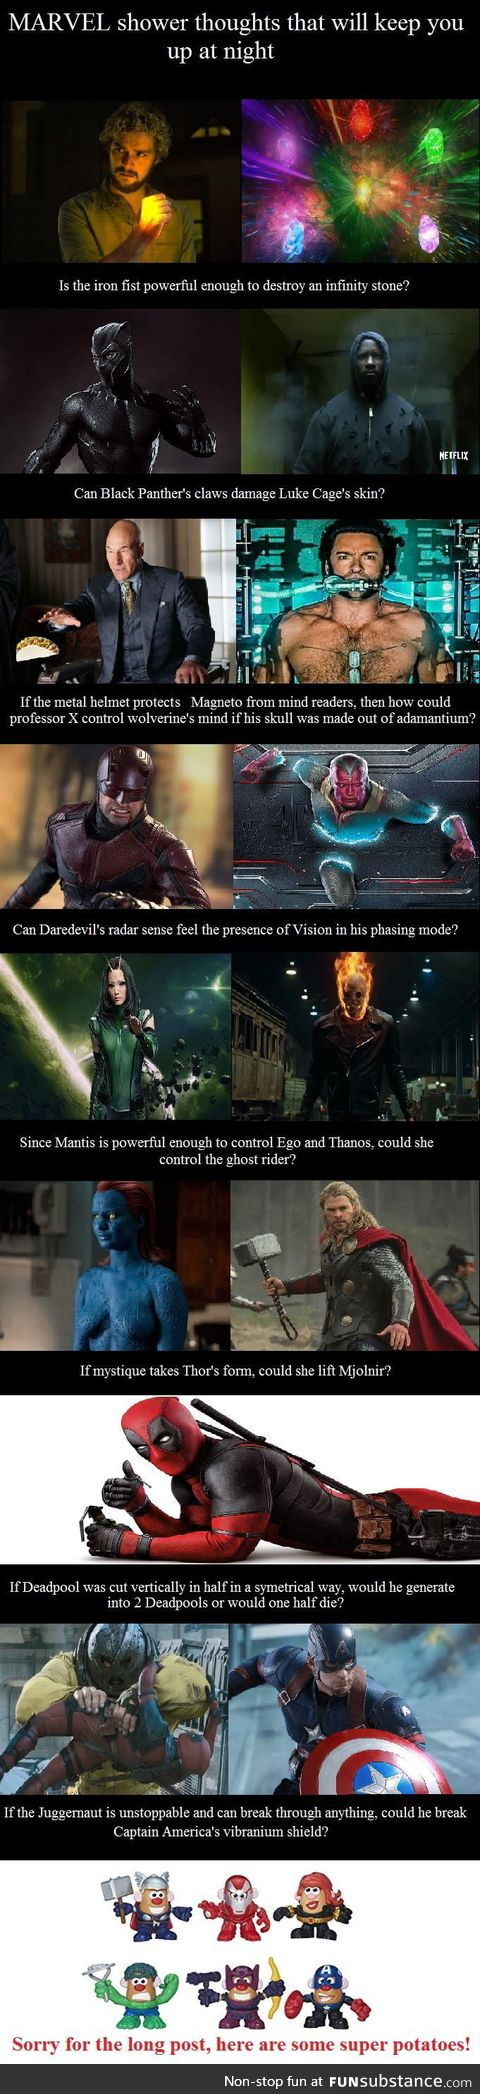 Marvel shower thoughts